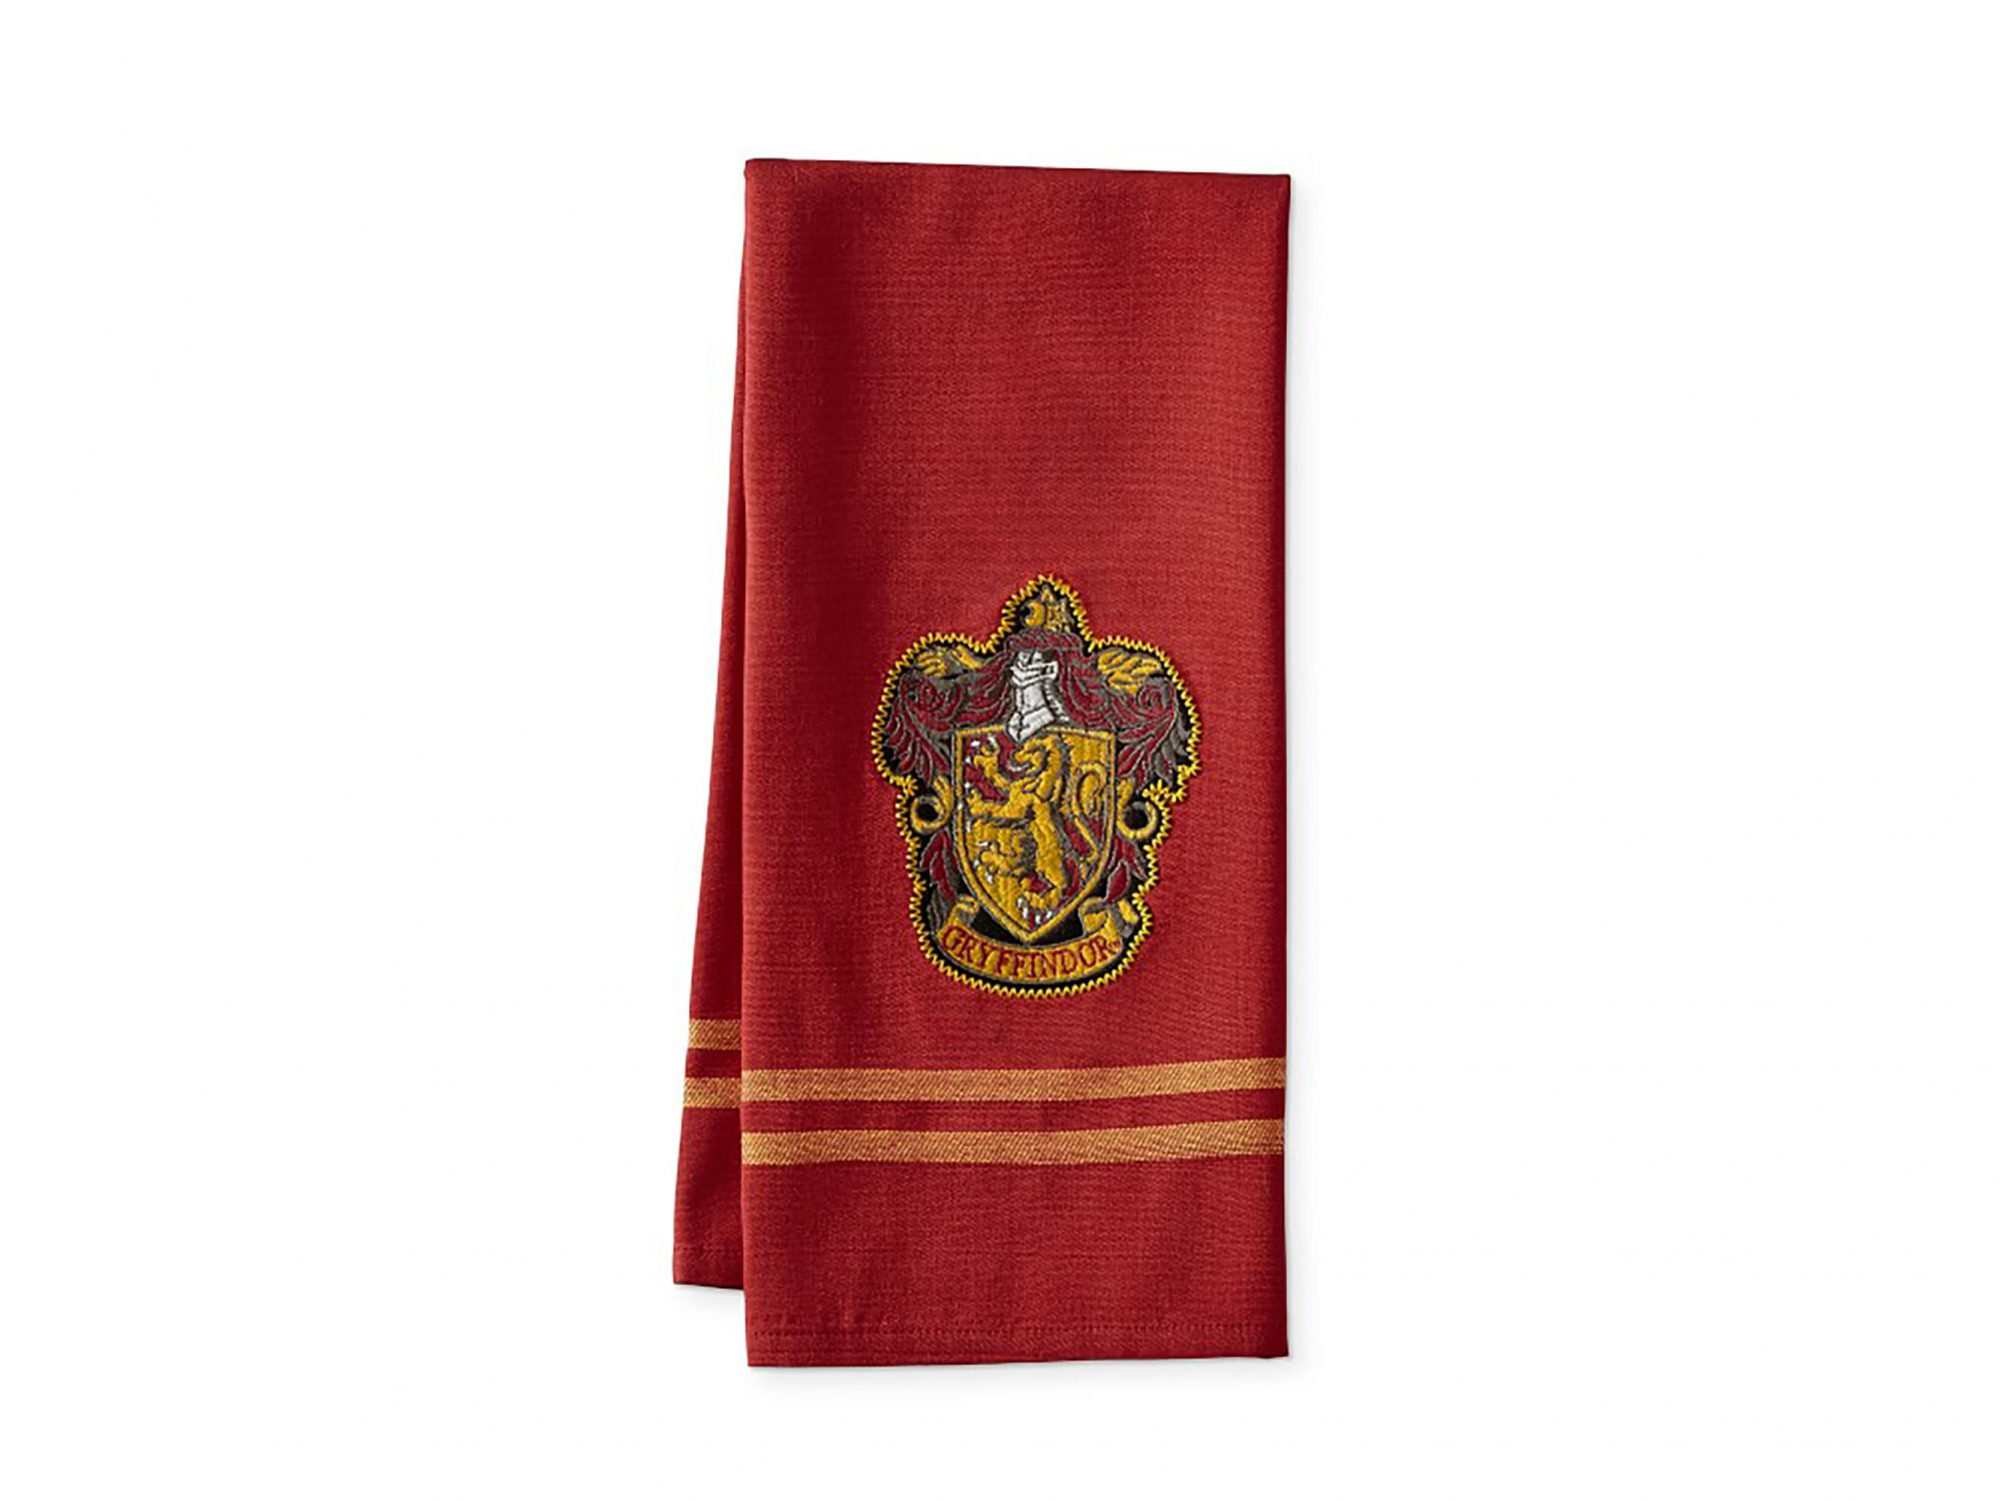 Williams Sonoma Adds New Harry Potter Items Just in Time for Holidays 1810w-HP-Towels